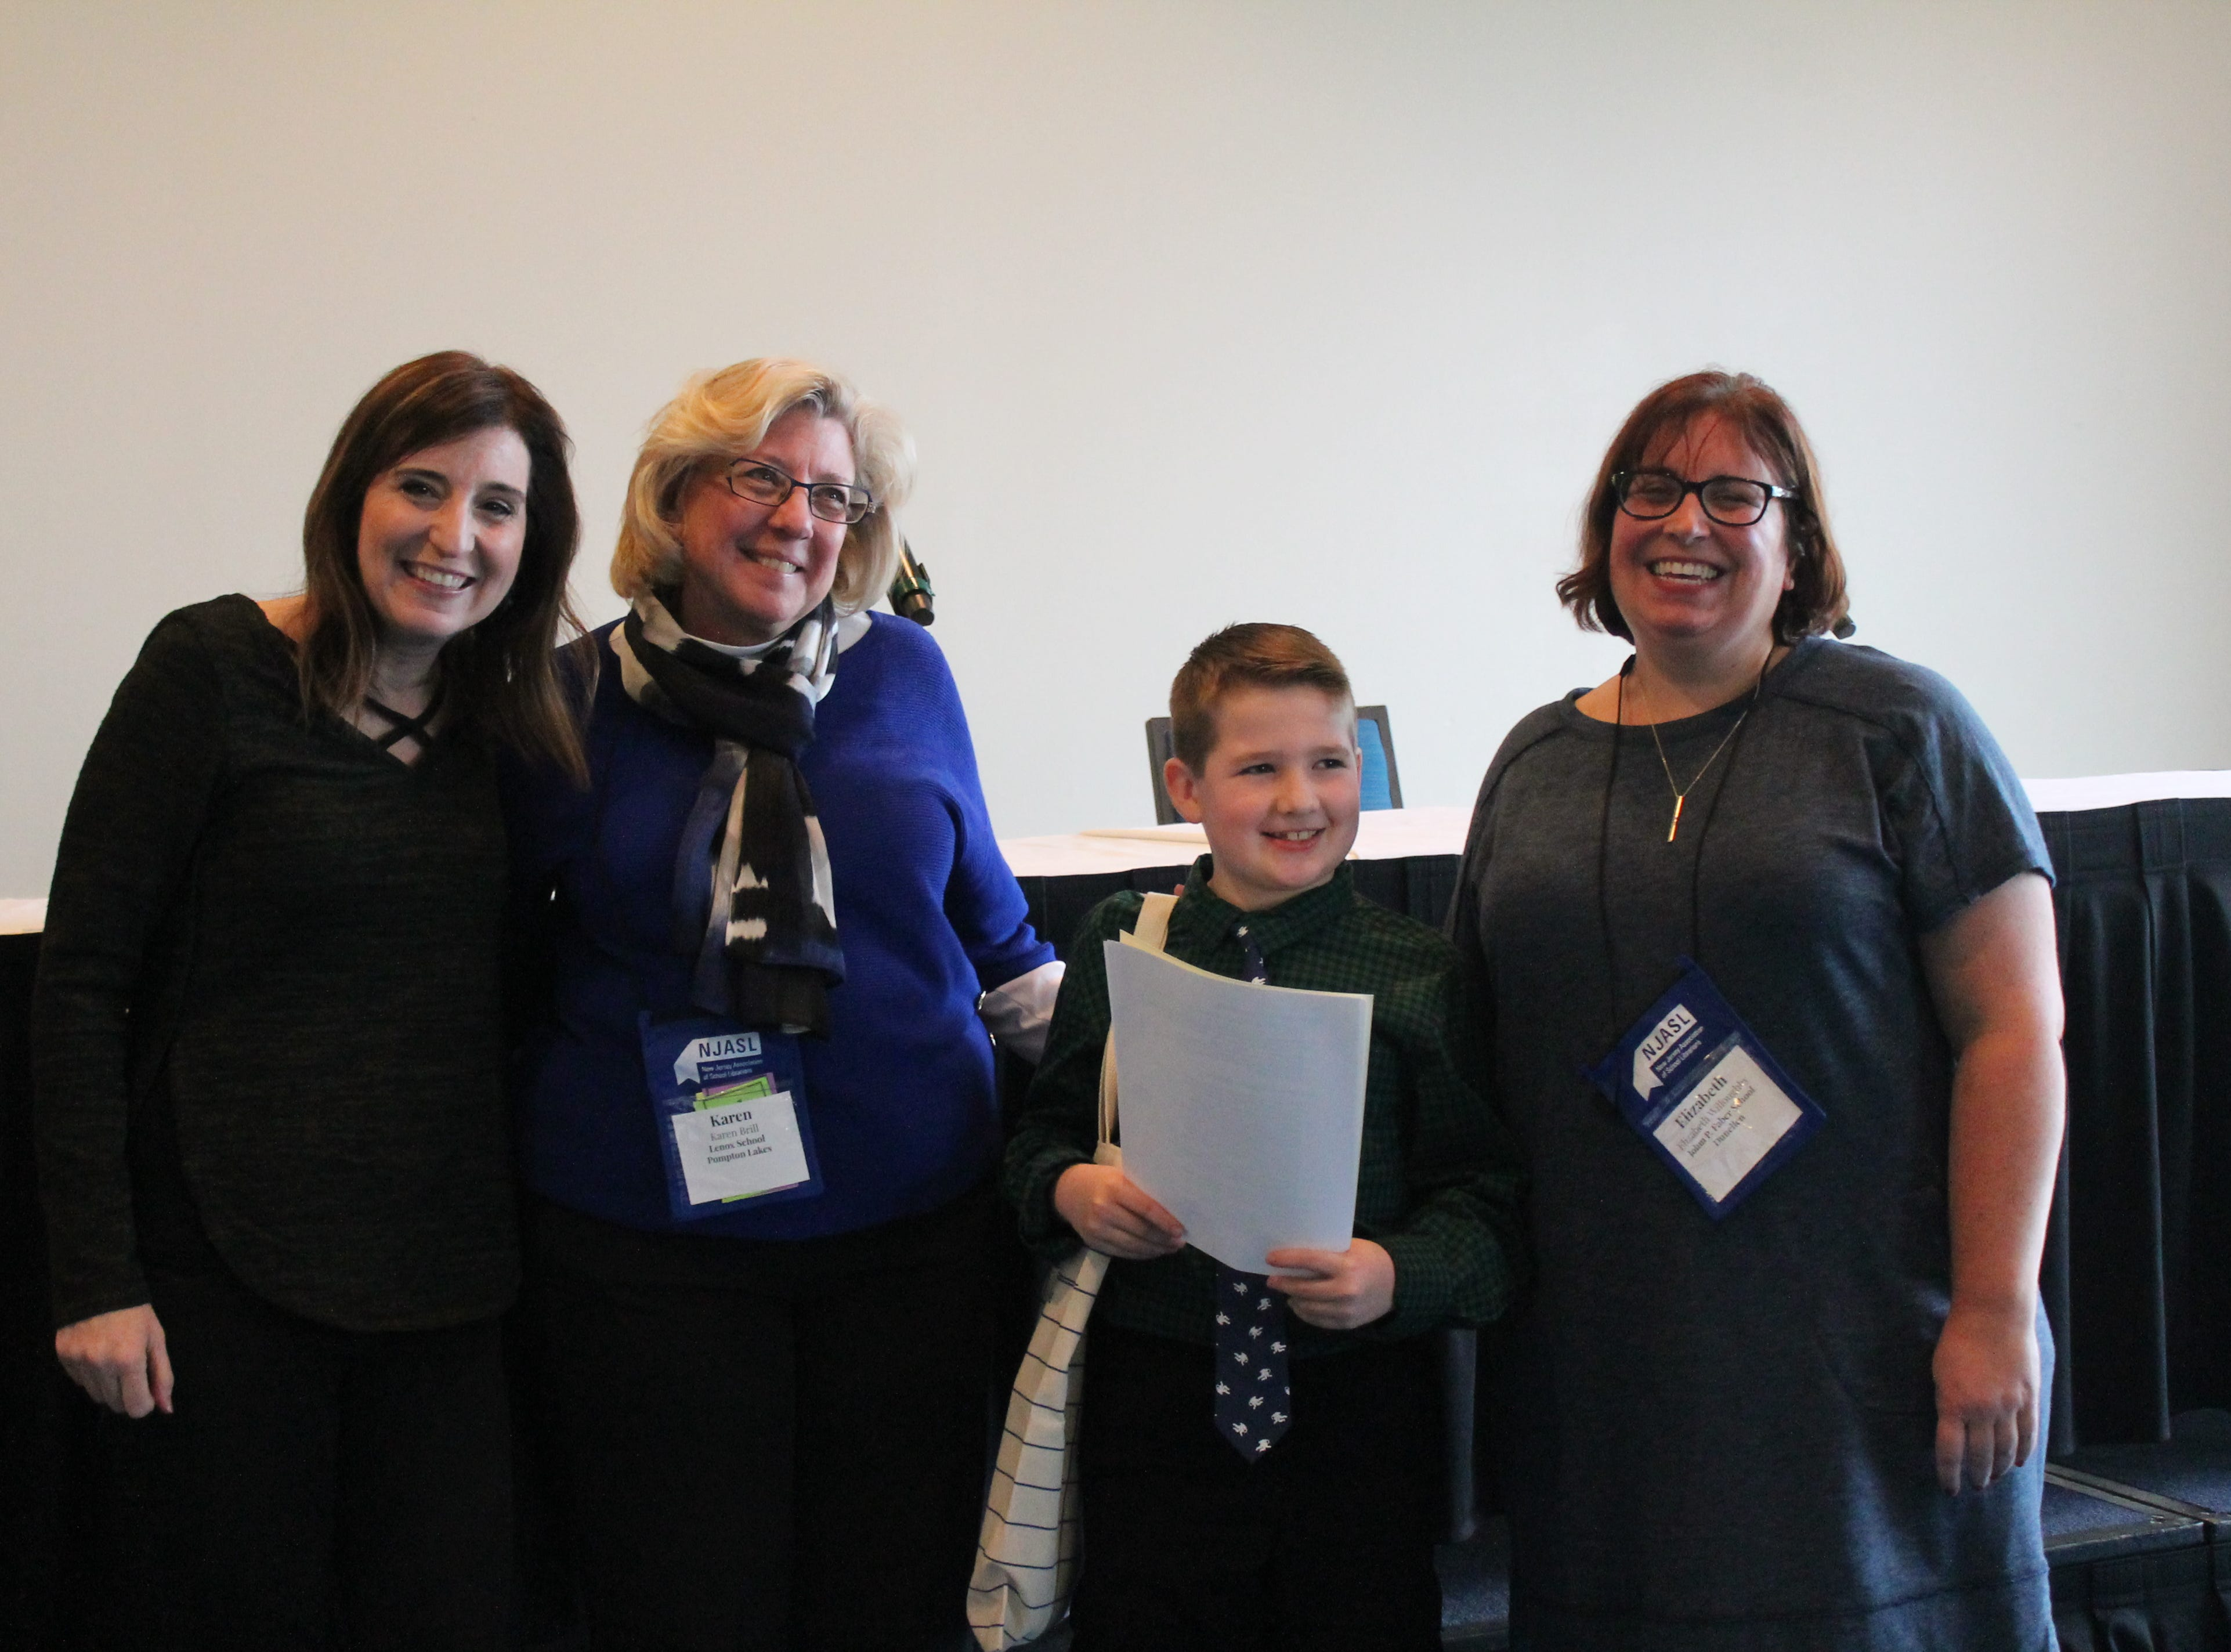 Author, Wendy Mass, Karen Brill, Jackson Portik, and Librarian, Beth Willoughby